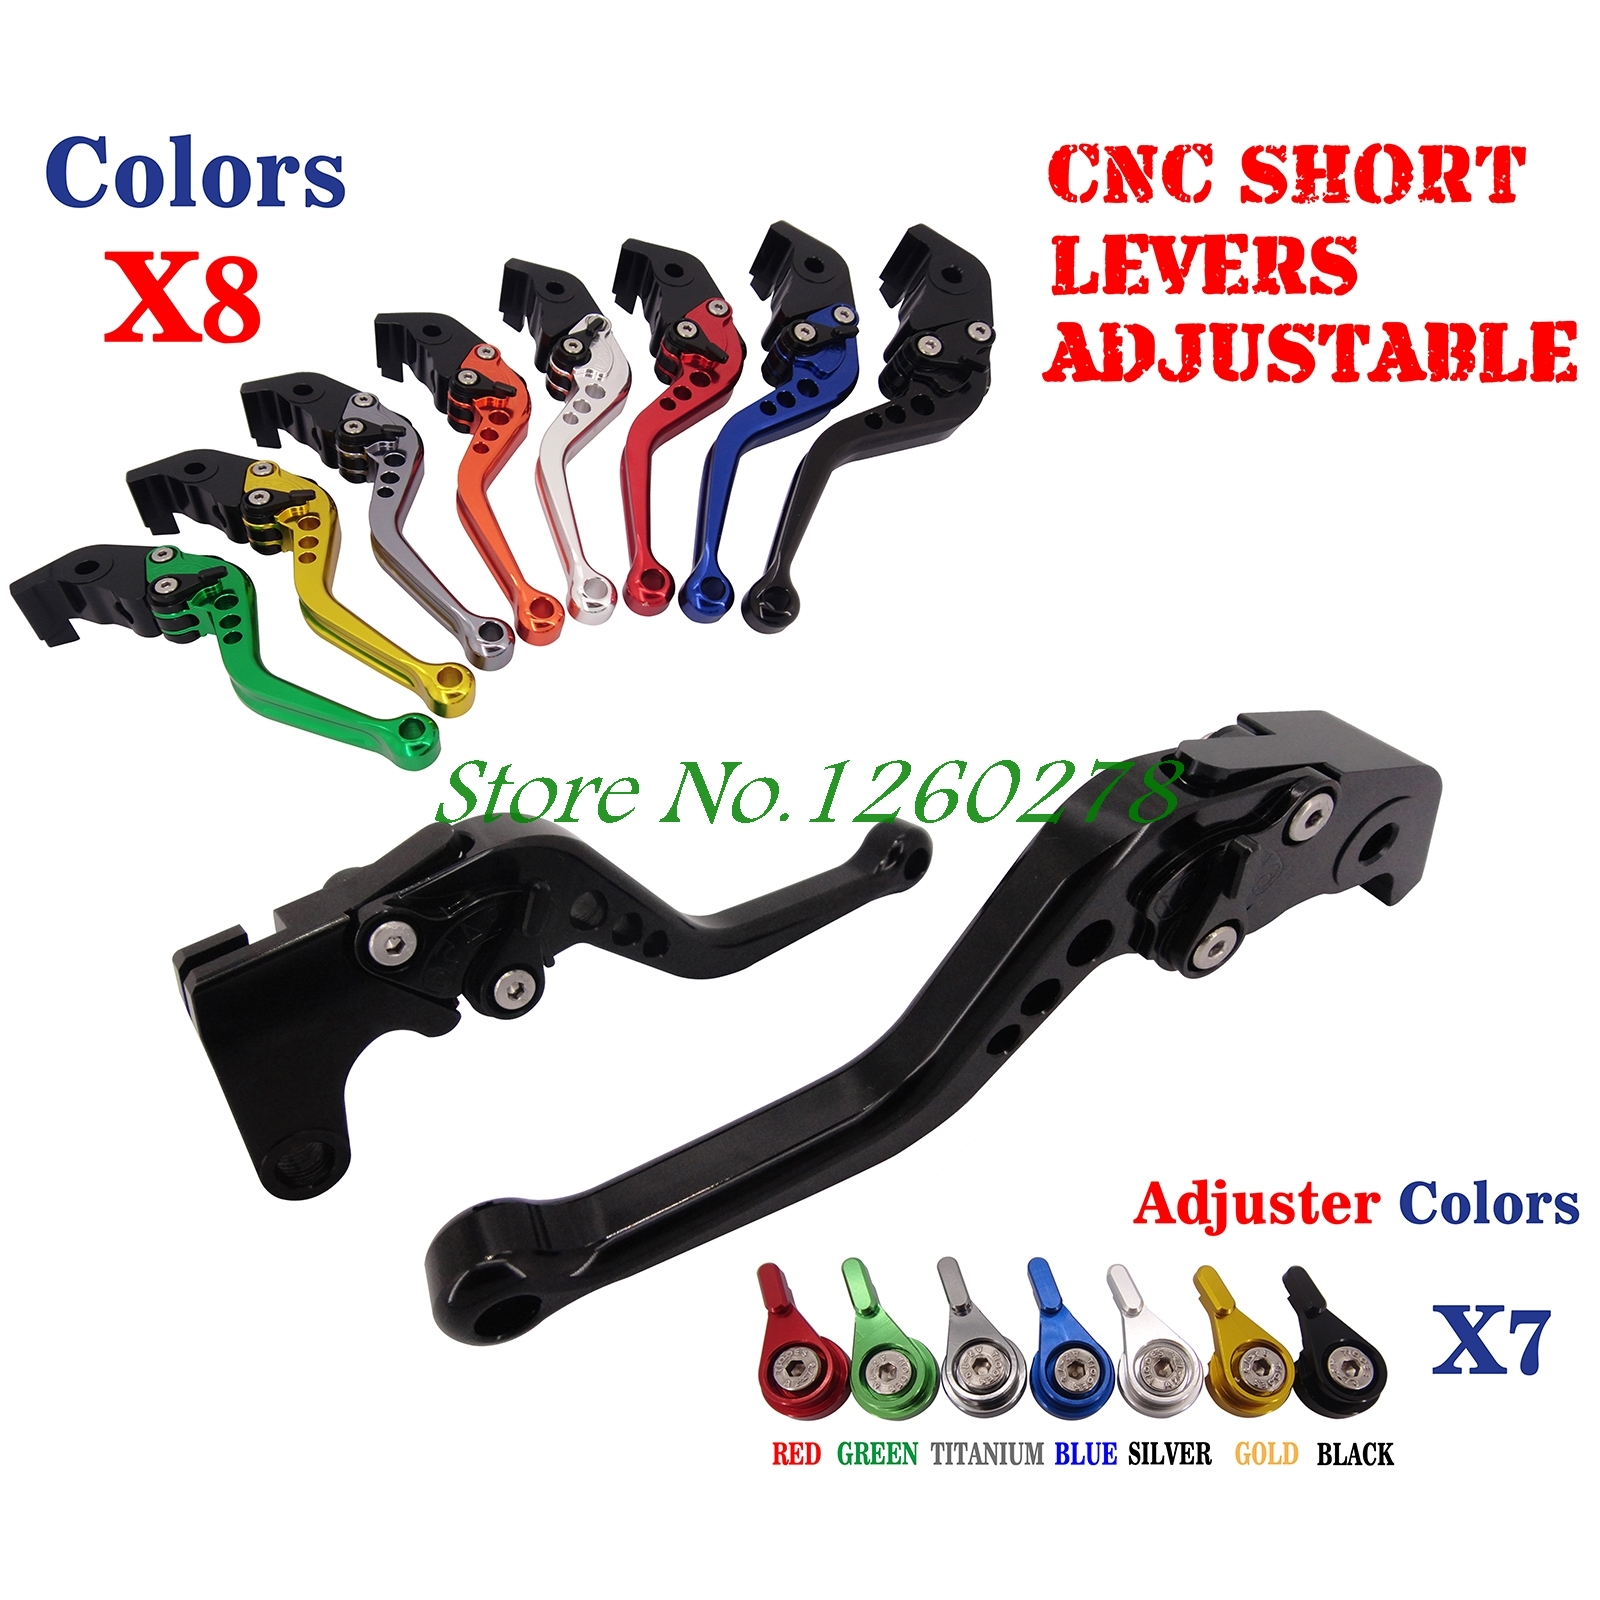 Motorcycle CNC Adjustable Brake Clutch Levers For Yamaha XJ600S/N XJ900S  Diversion XJ400L/S FZX250 ZEAL TDM850 for yamaha supertenere xt1200ze fjr 1300 xjr 1300 racer cnc adjustable levers brake clutch levers blade motorcycle accessory